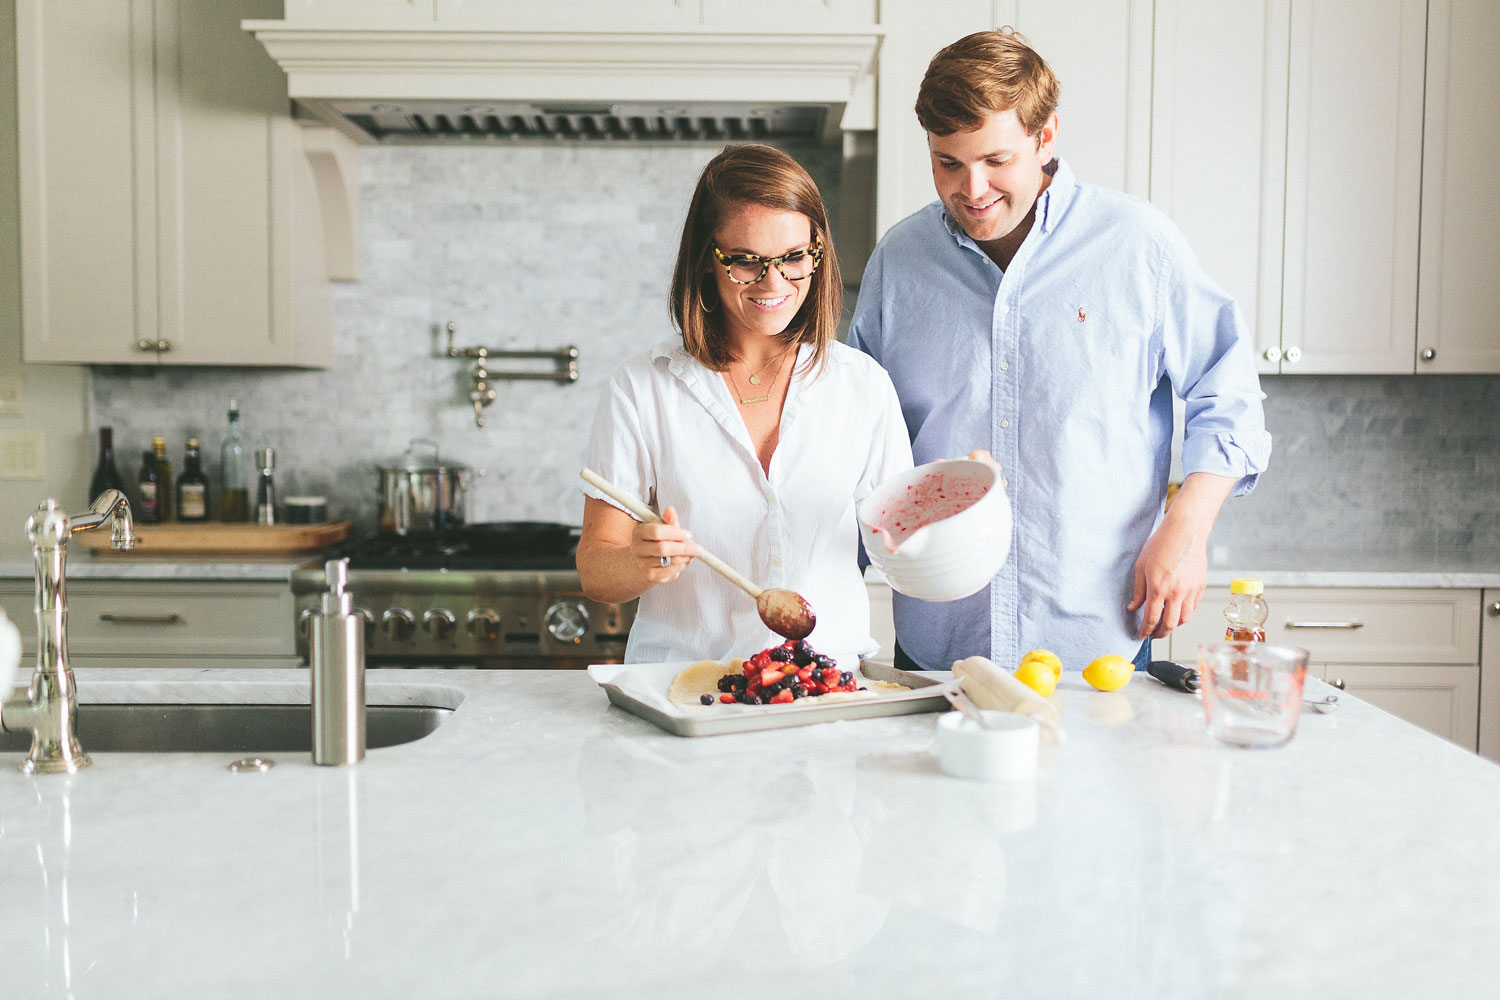 At home engagement session photo shoot in the kitchen e-session ideas baking berry dessert